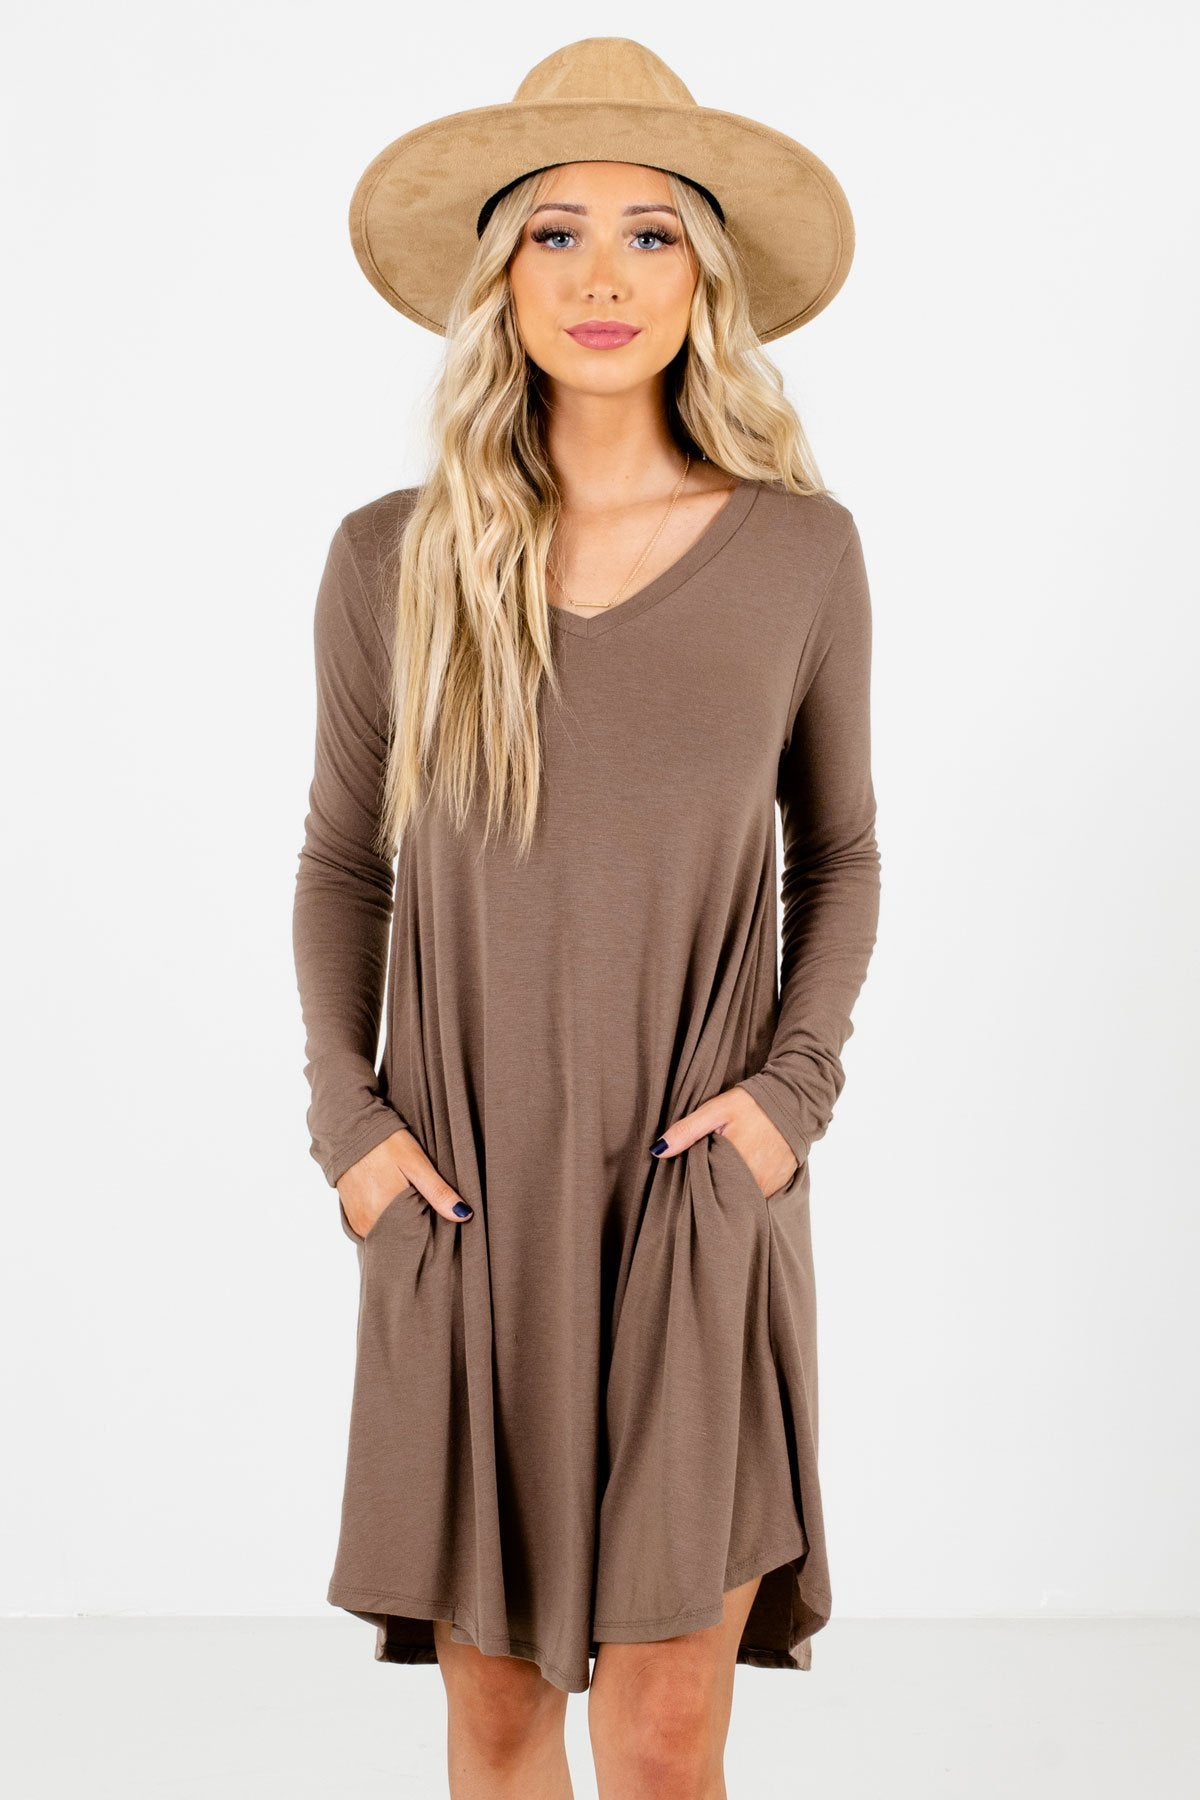 Brown Long Sleeve Boutique Mini Dresses for Women